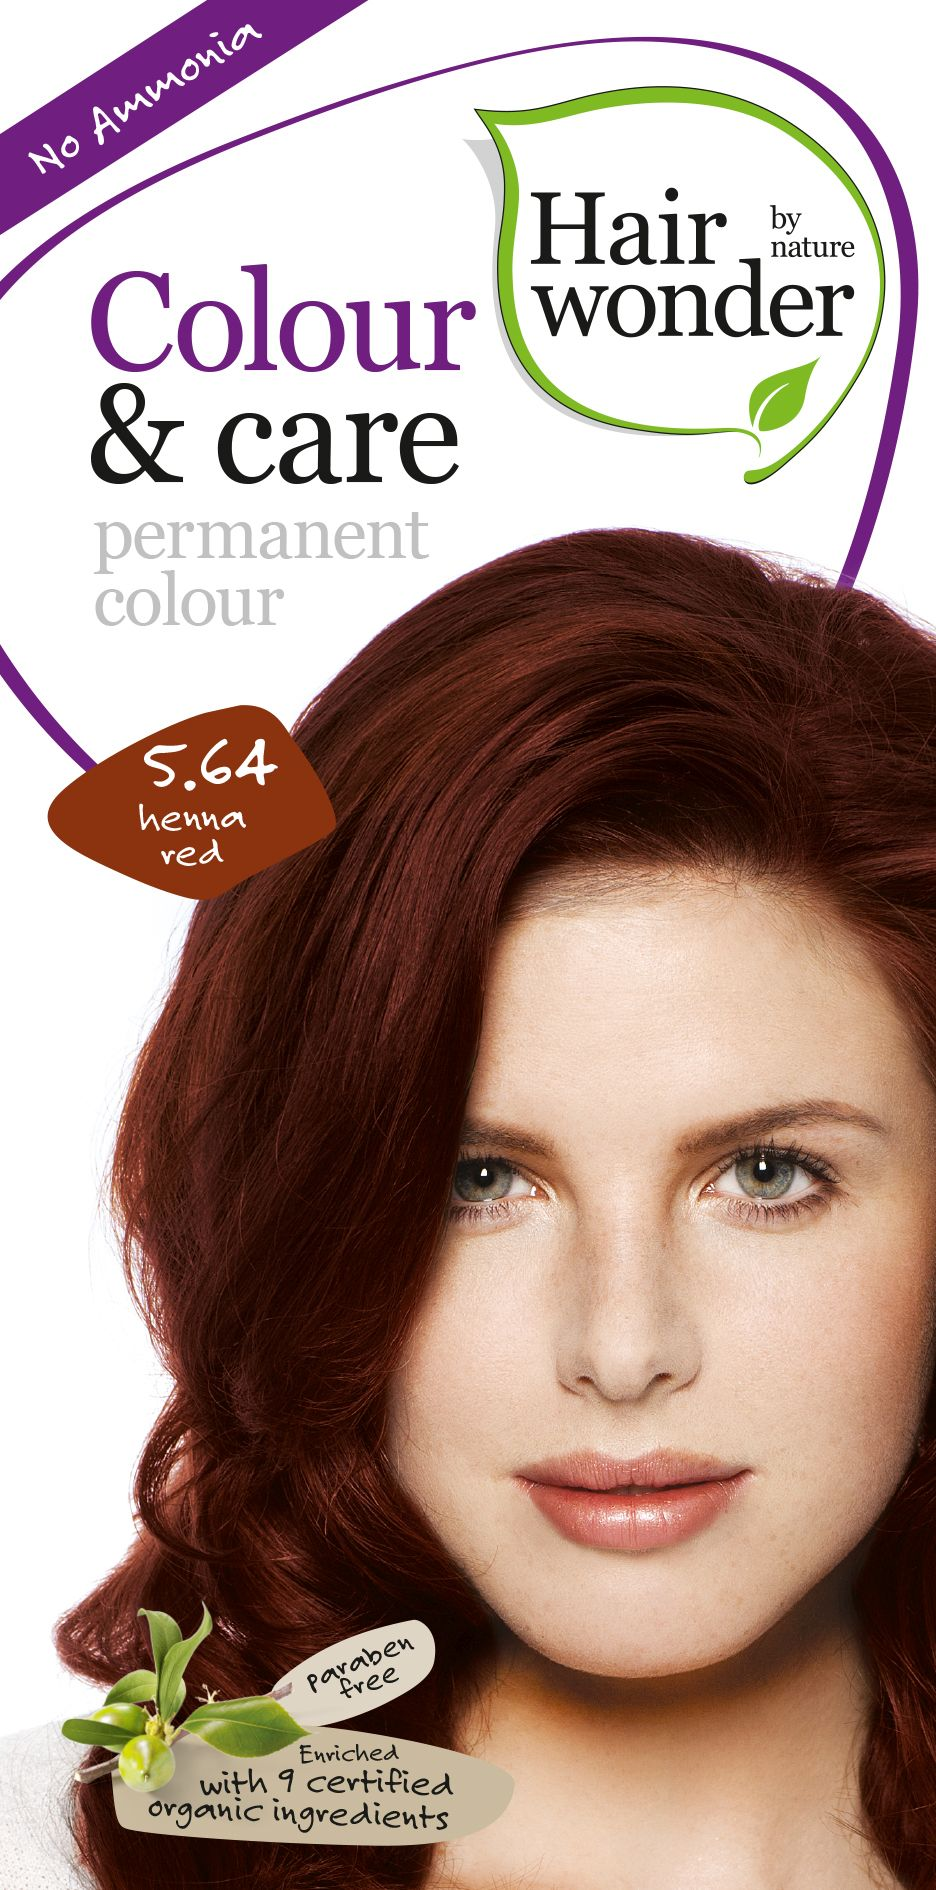 Hairwonder Colour & Care Henna Red 5.64